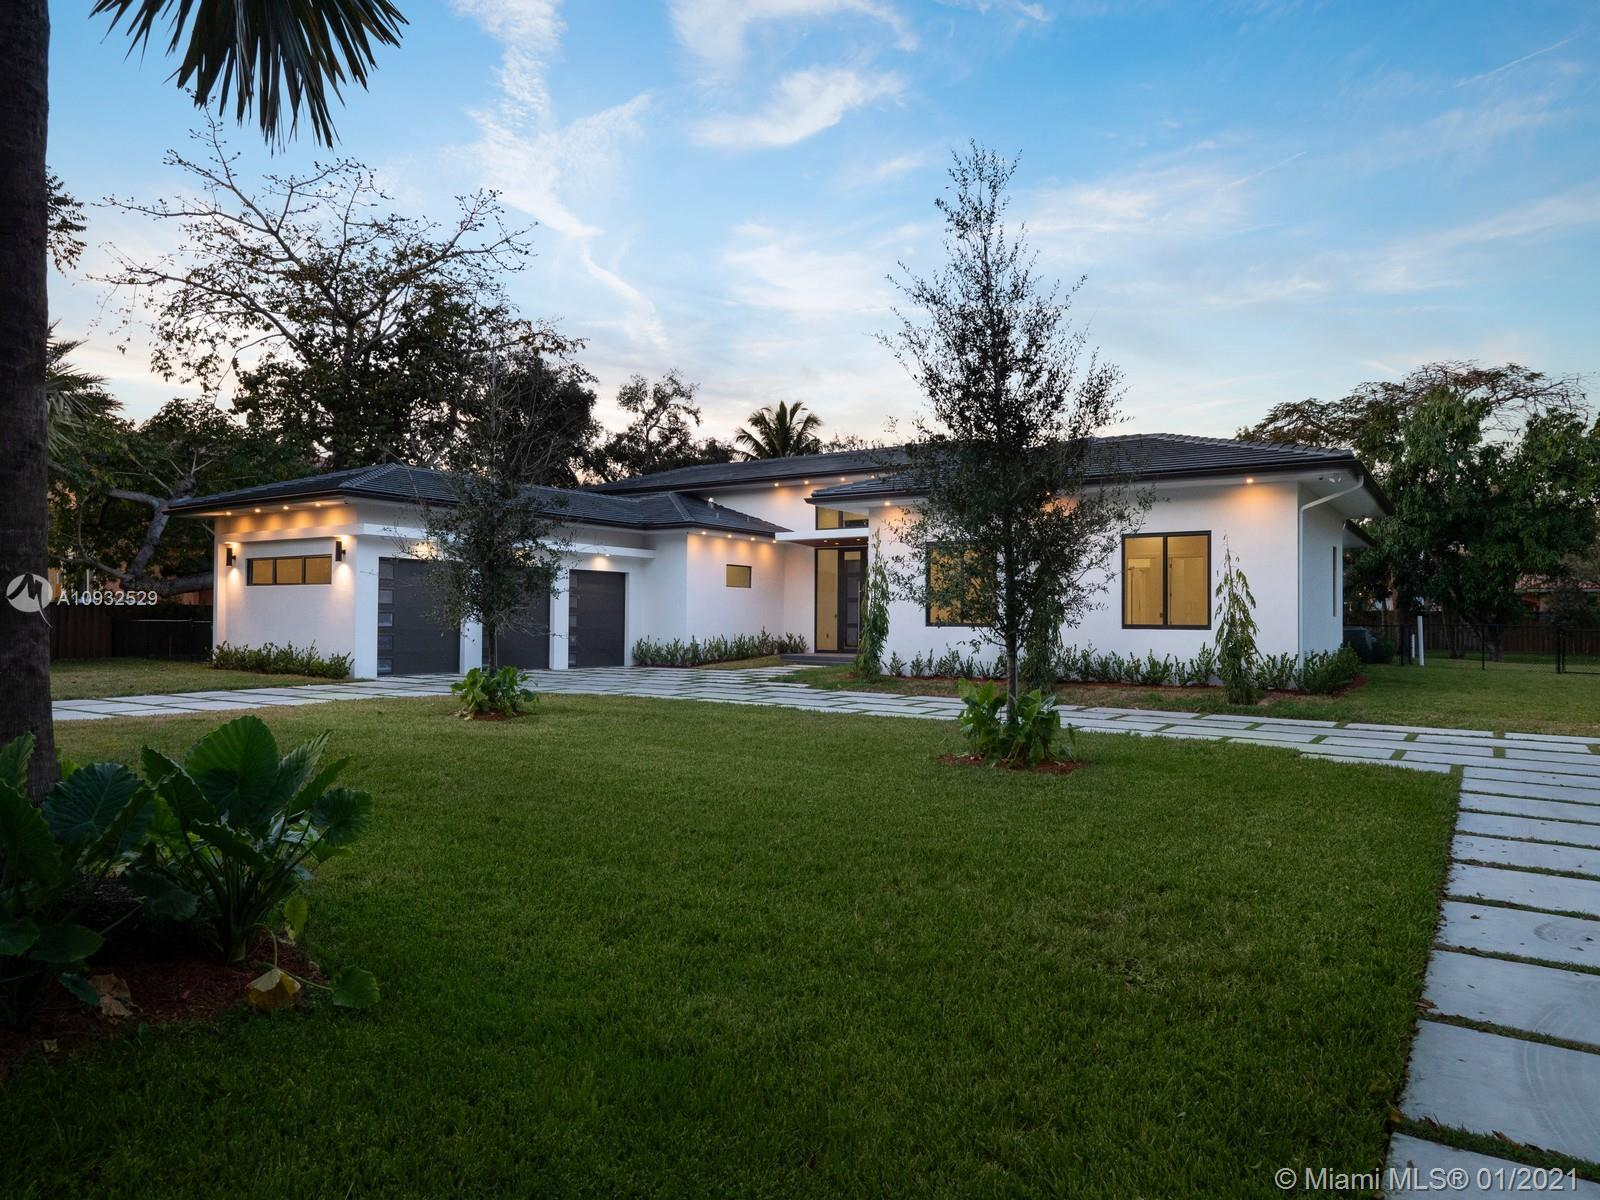 Impressive Brand-New Construction ready for occupancy in Pinecrest. This spectacular 1-story modern